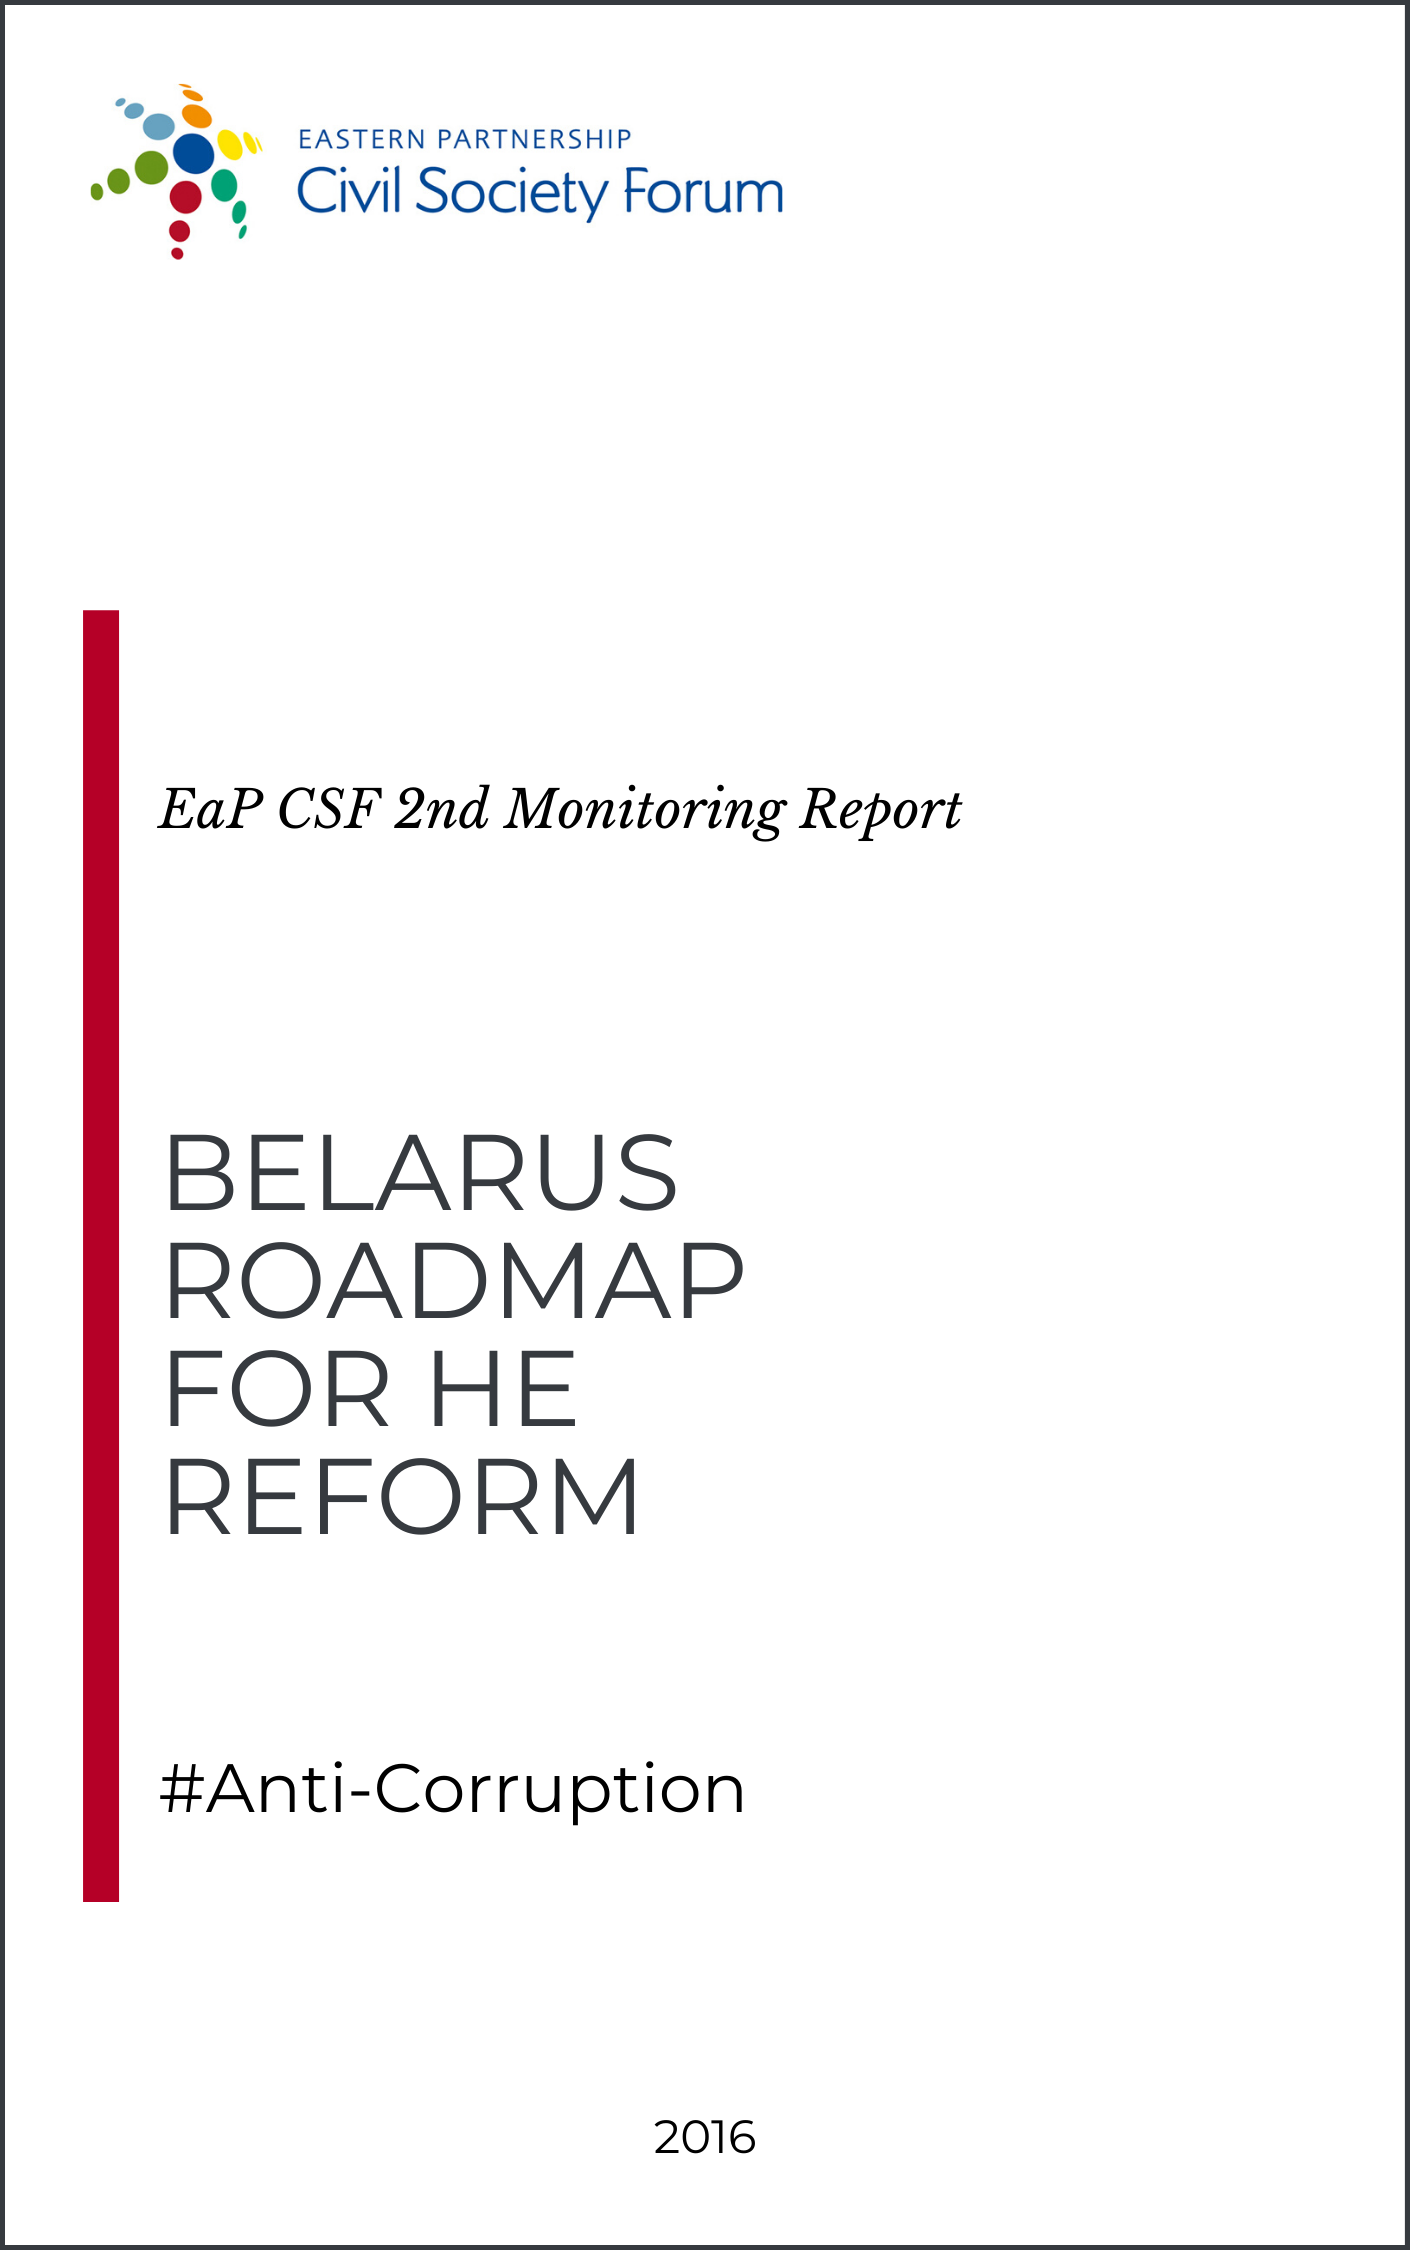 Belarus Roadmap for HE Reform (2nd Monitoring Report)